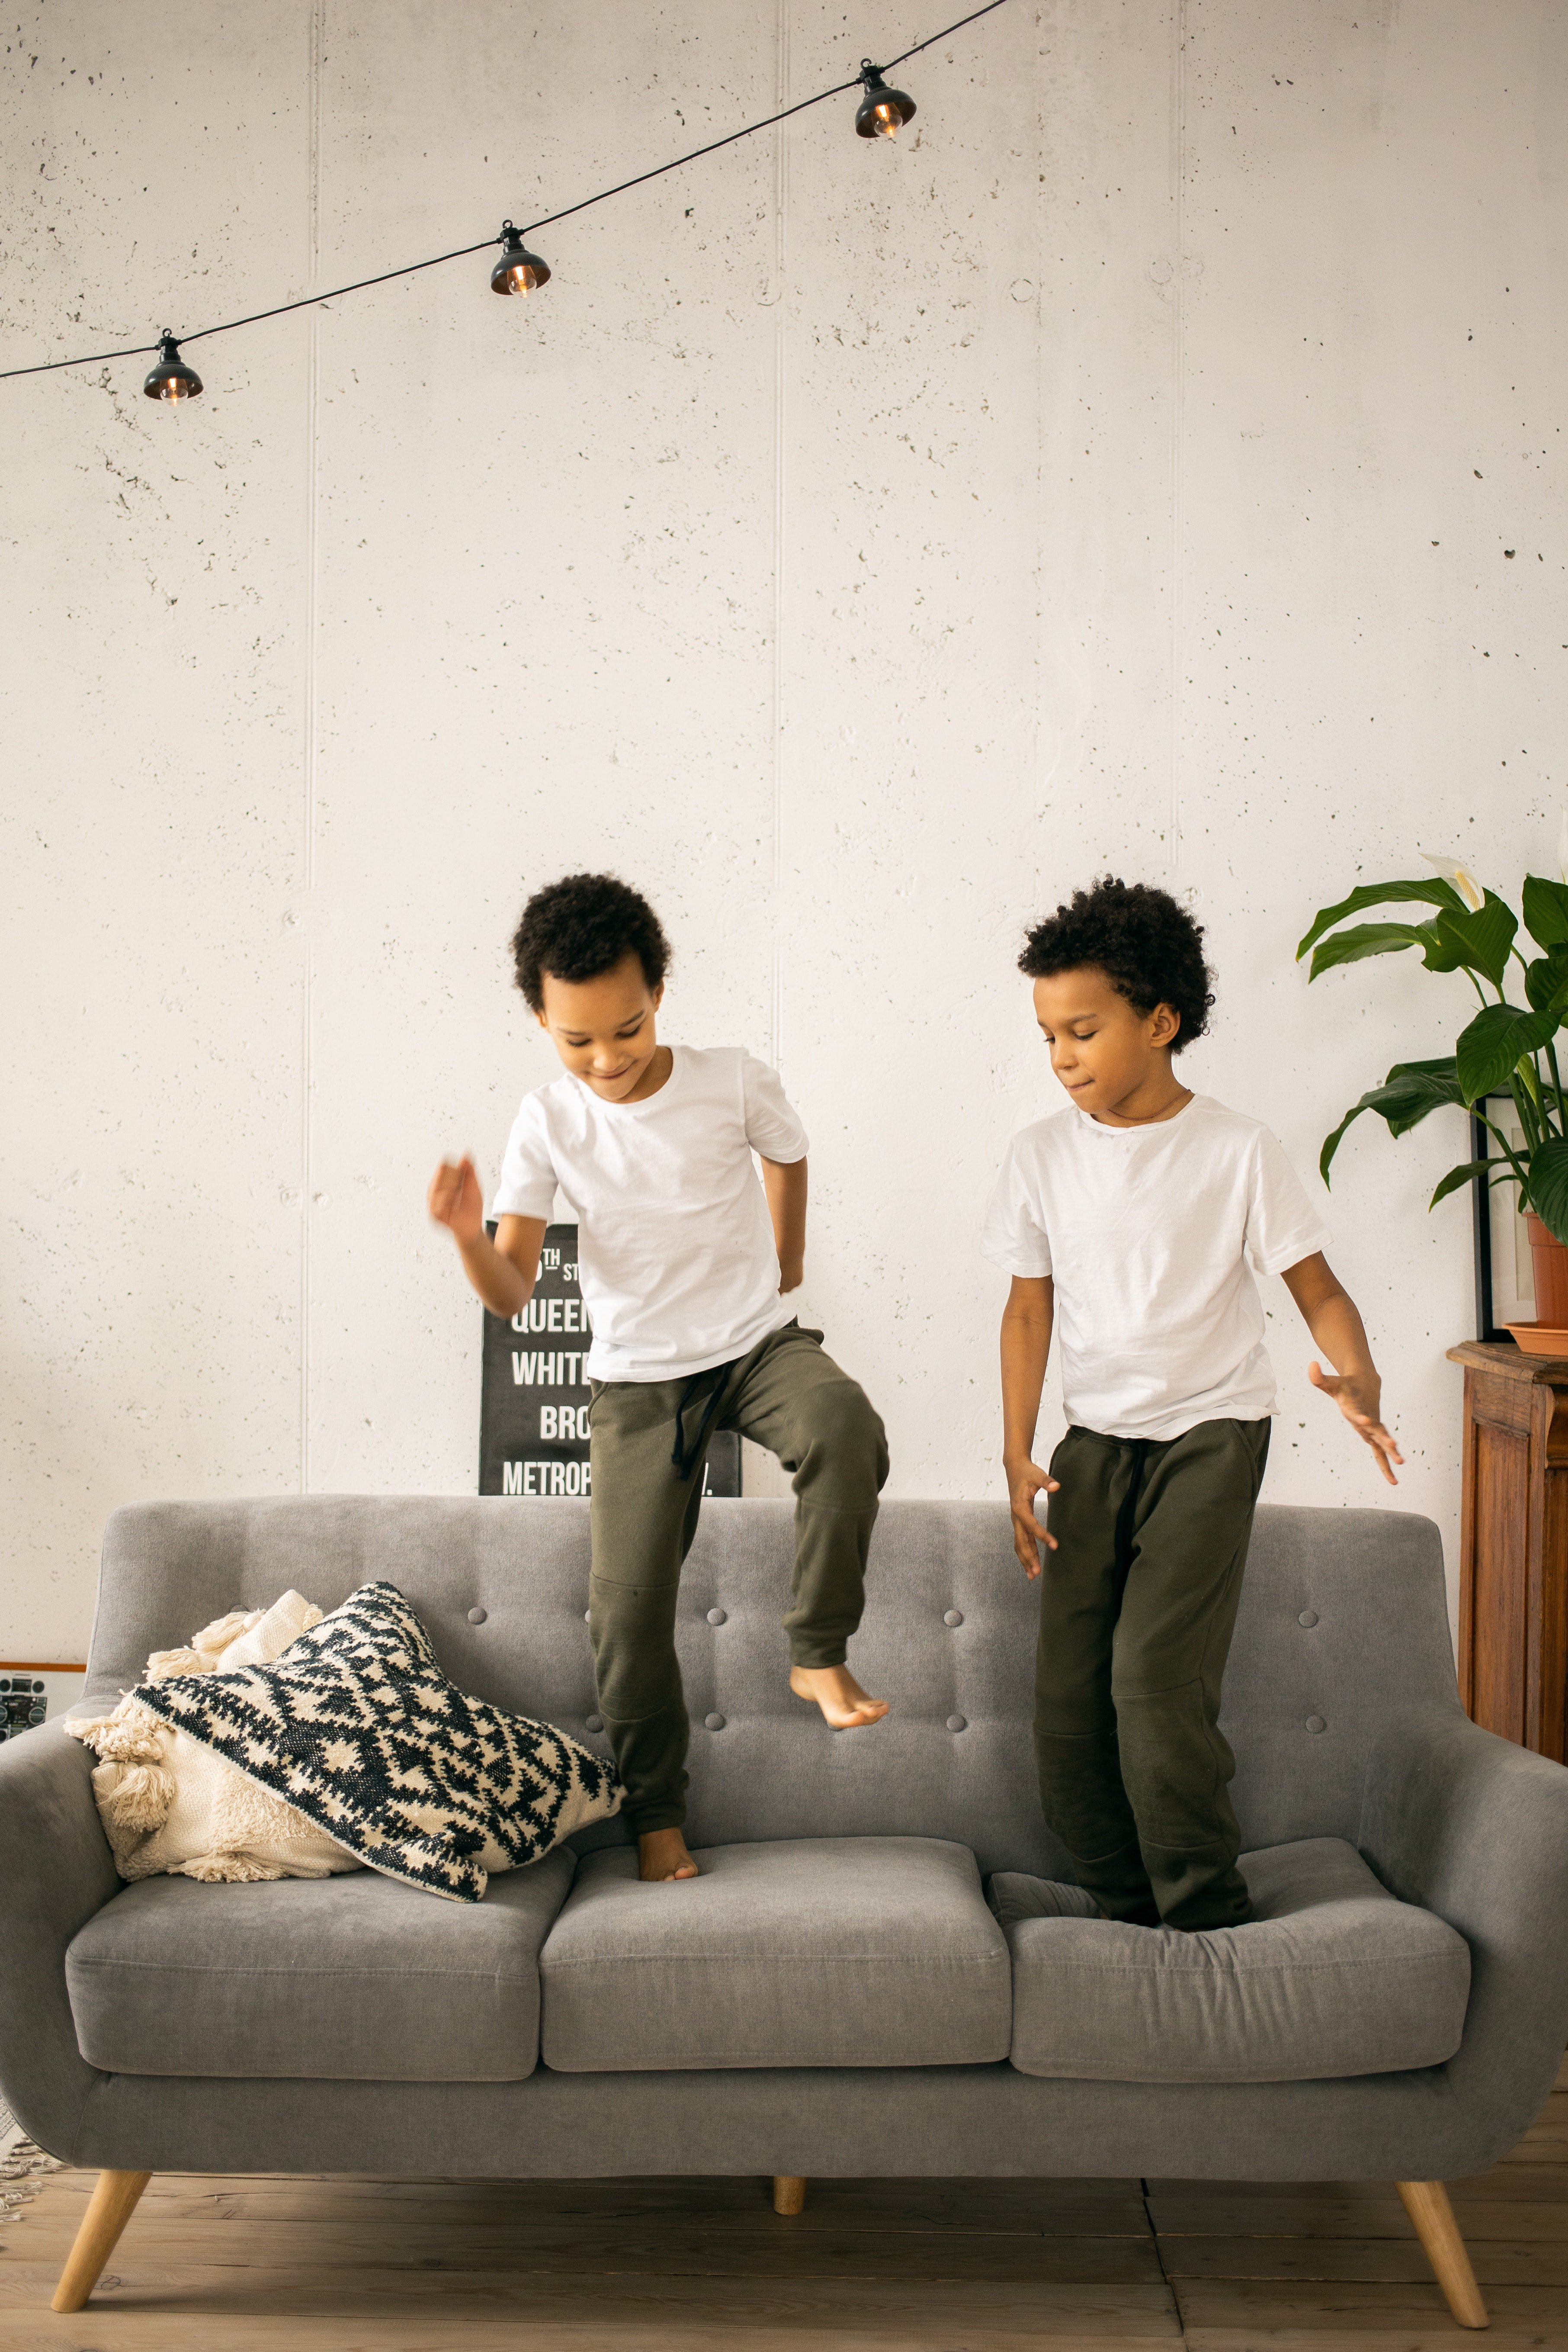 Identical twins jumping on the sofa   Photo: Pexels